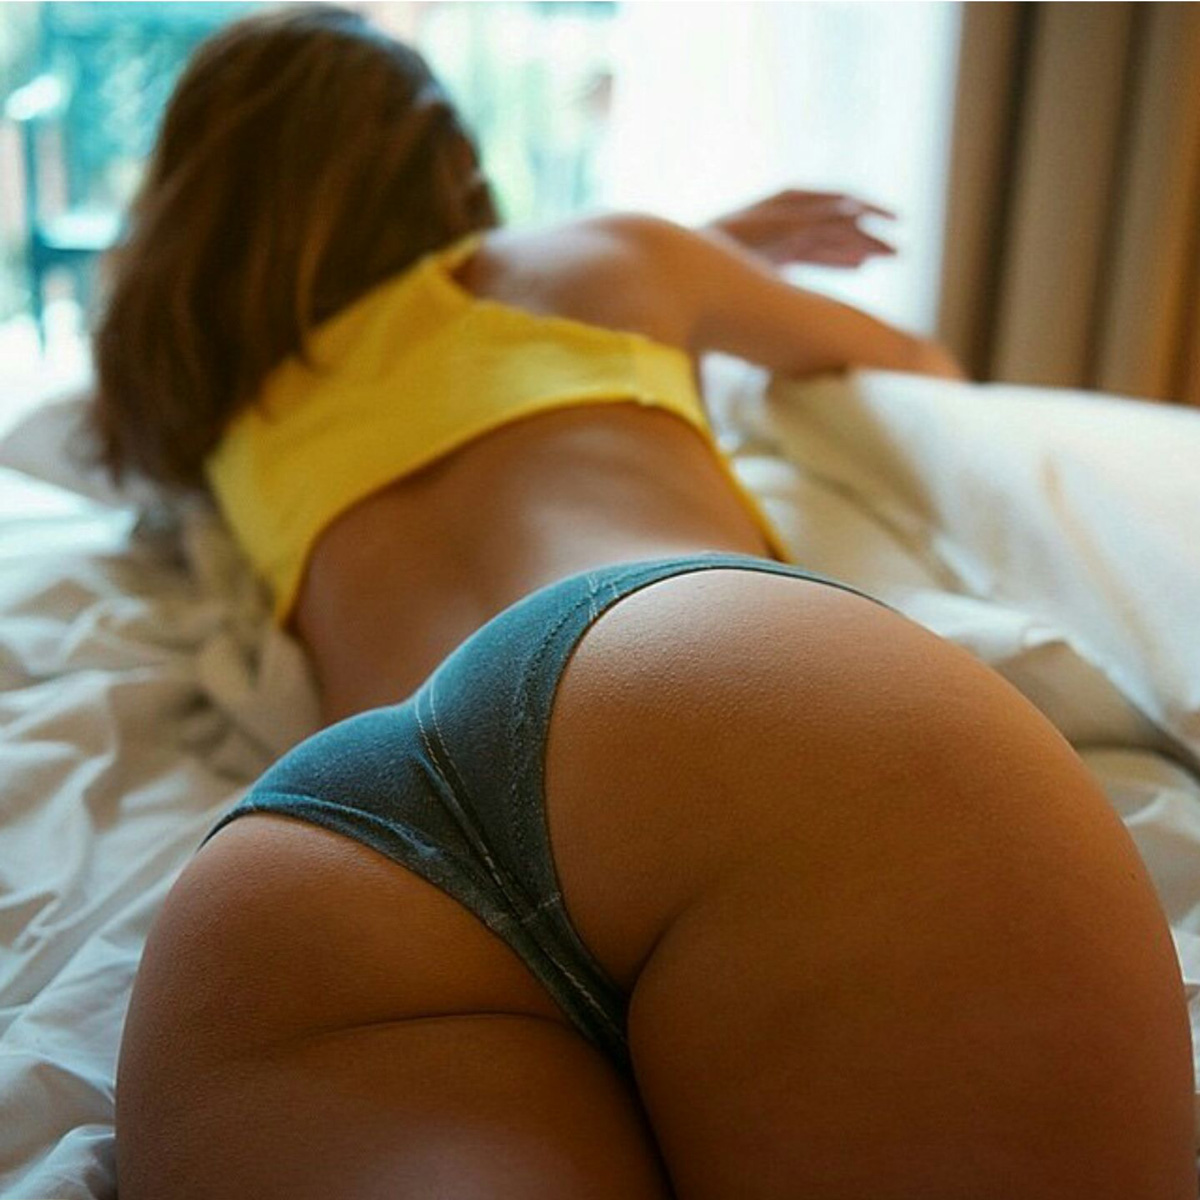 Big Booties In Bed  Part 9-3957